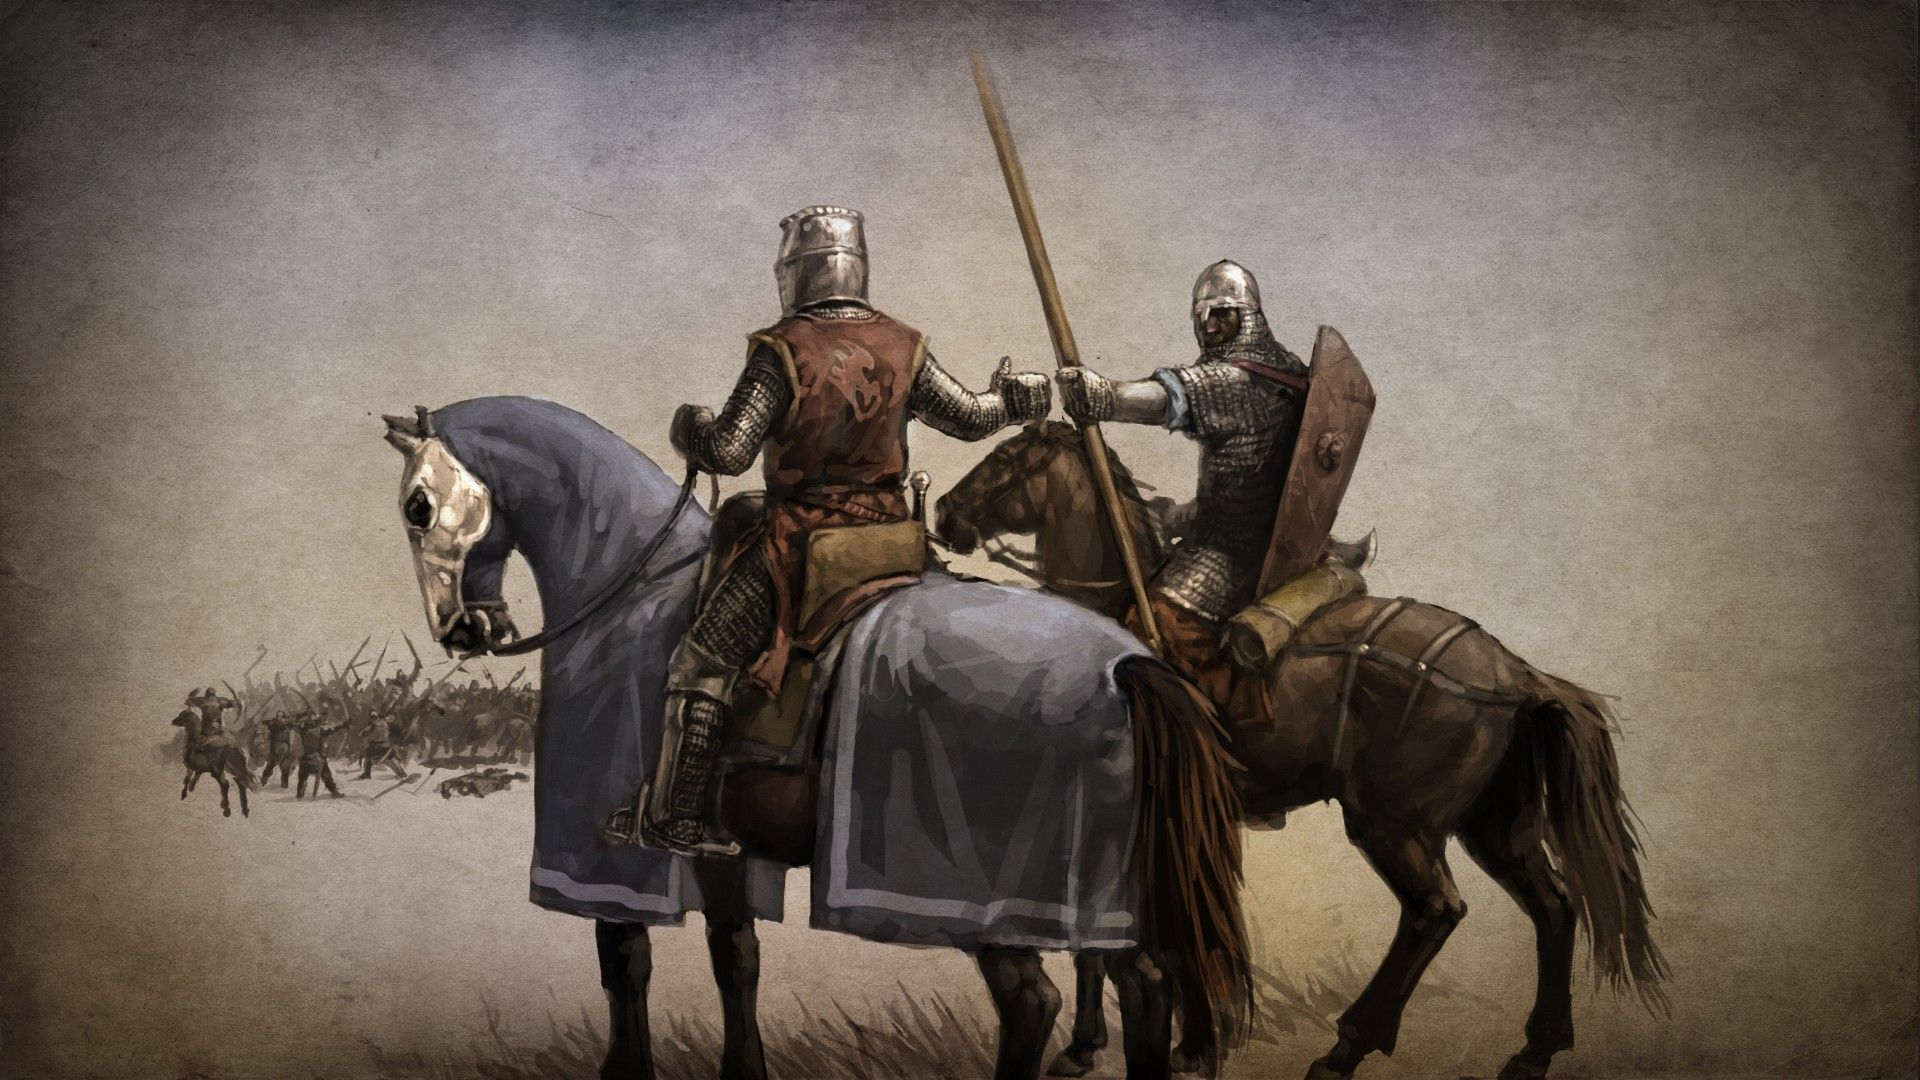 Mount And Blade Wallpaper Wallpapersafari